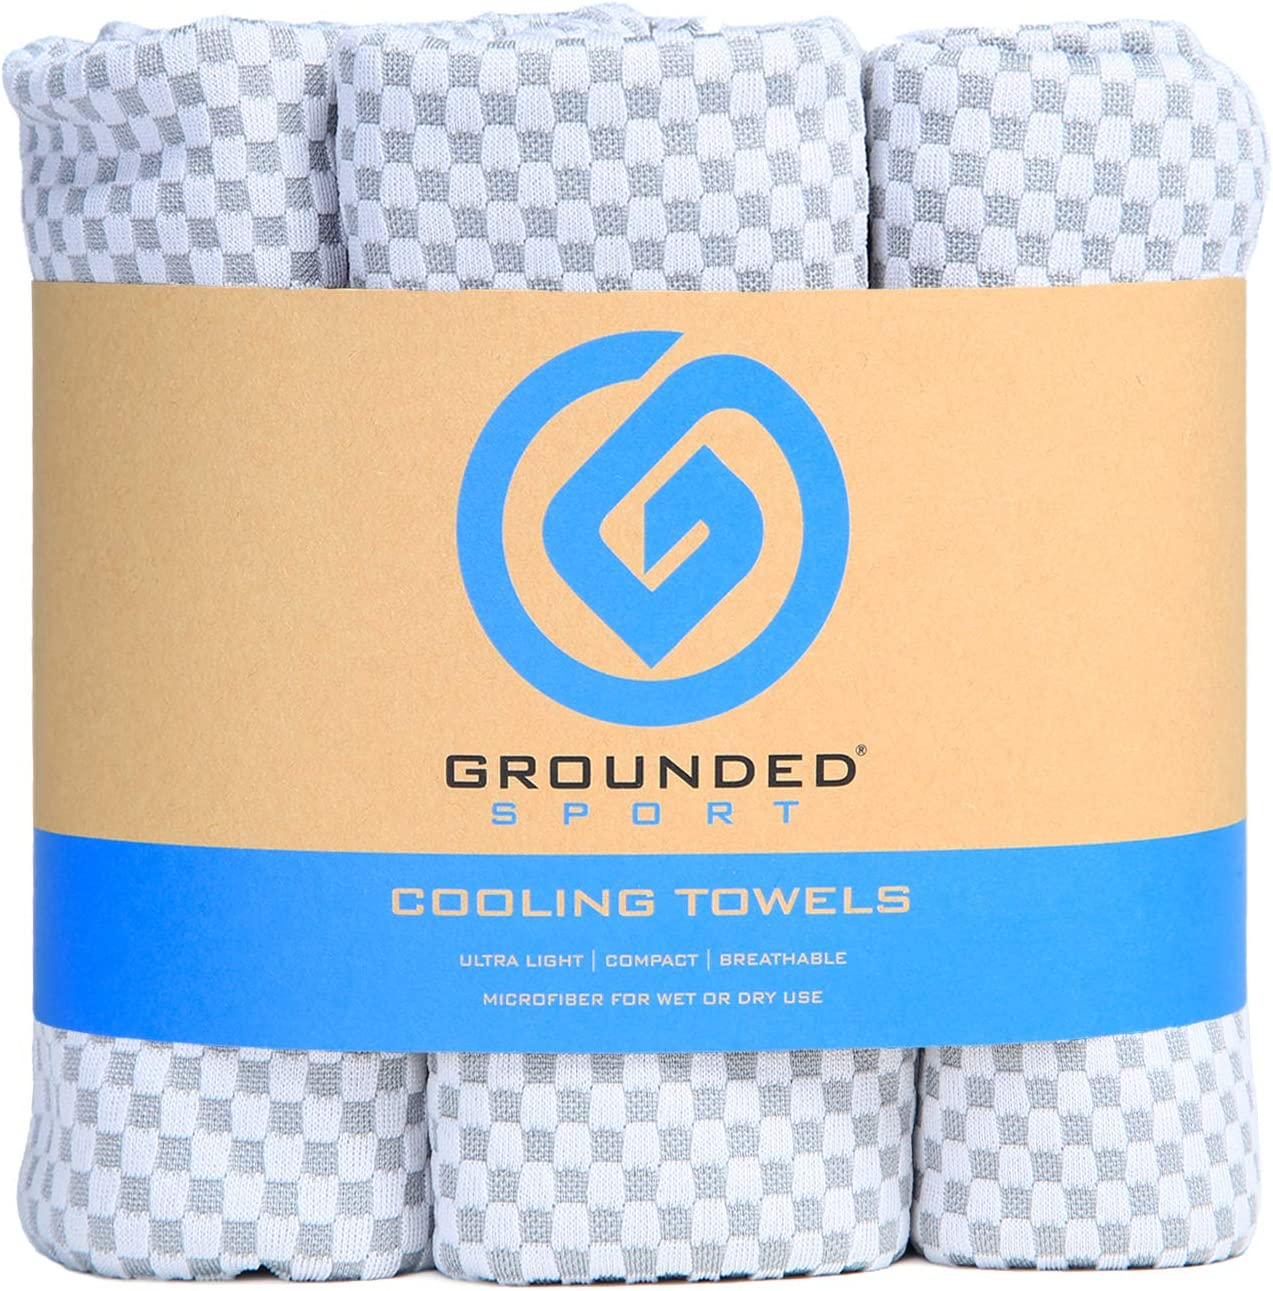 """Grounded Sport Ultra Lightweight Compact (12"""" x 39"""") Cooling Towel 3-Pack Microfiber Sport Towel for Women & Men, Workout, Fitness, Sports, Outdoors, Camping, Gym, Travel or Gifts"""